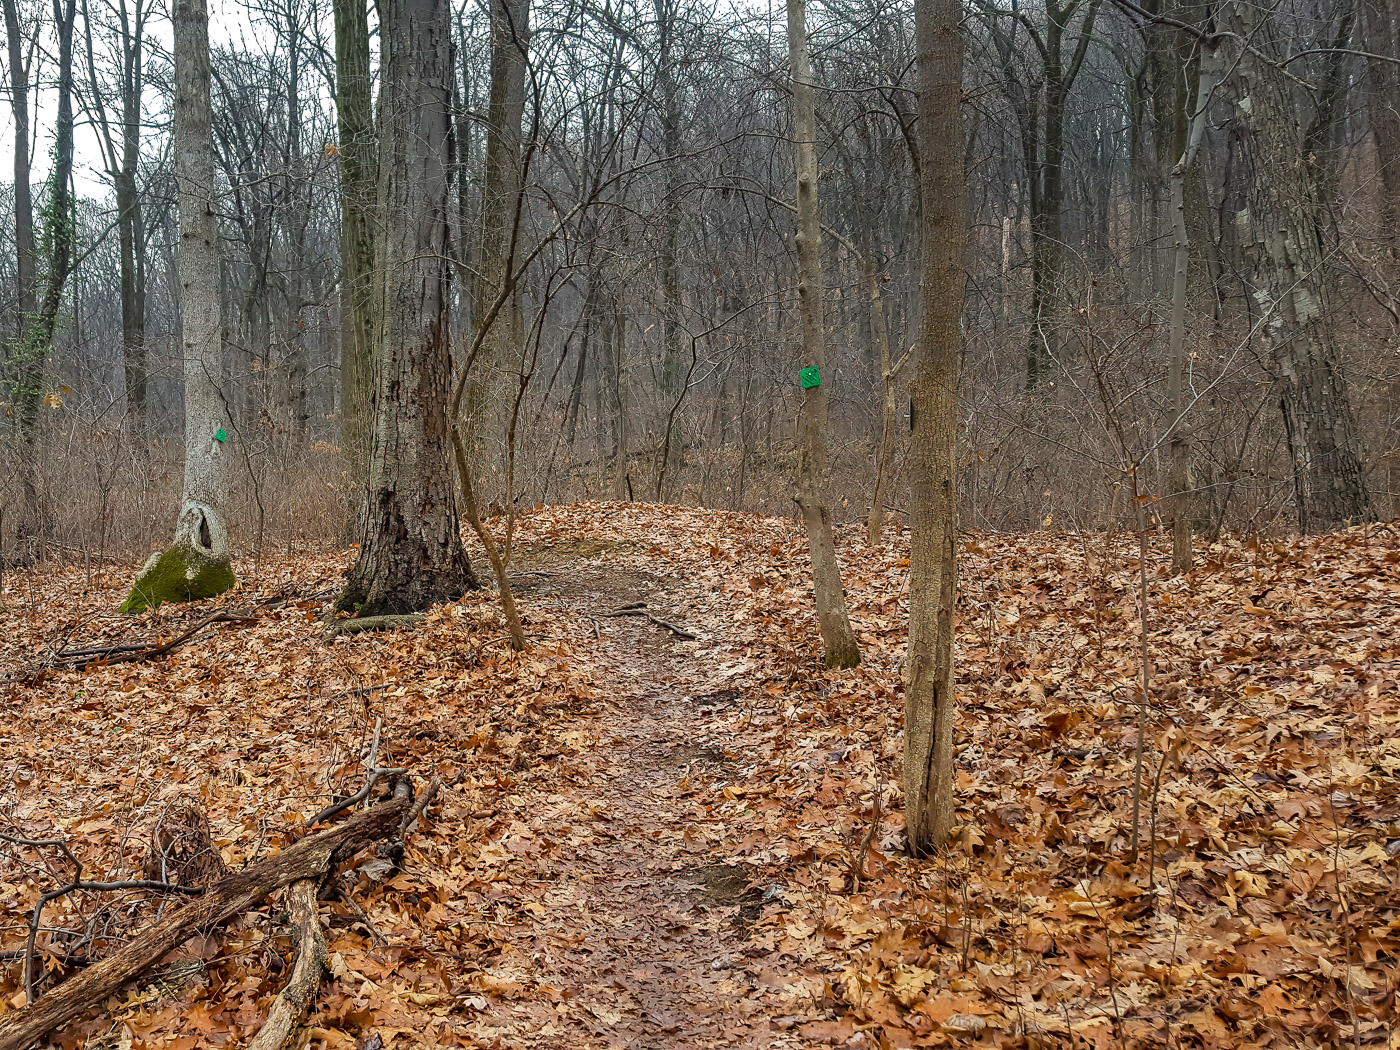 This woodland has a thick leaf understory protection for the coldest part of winter.